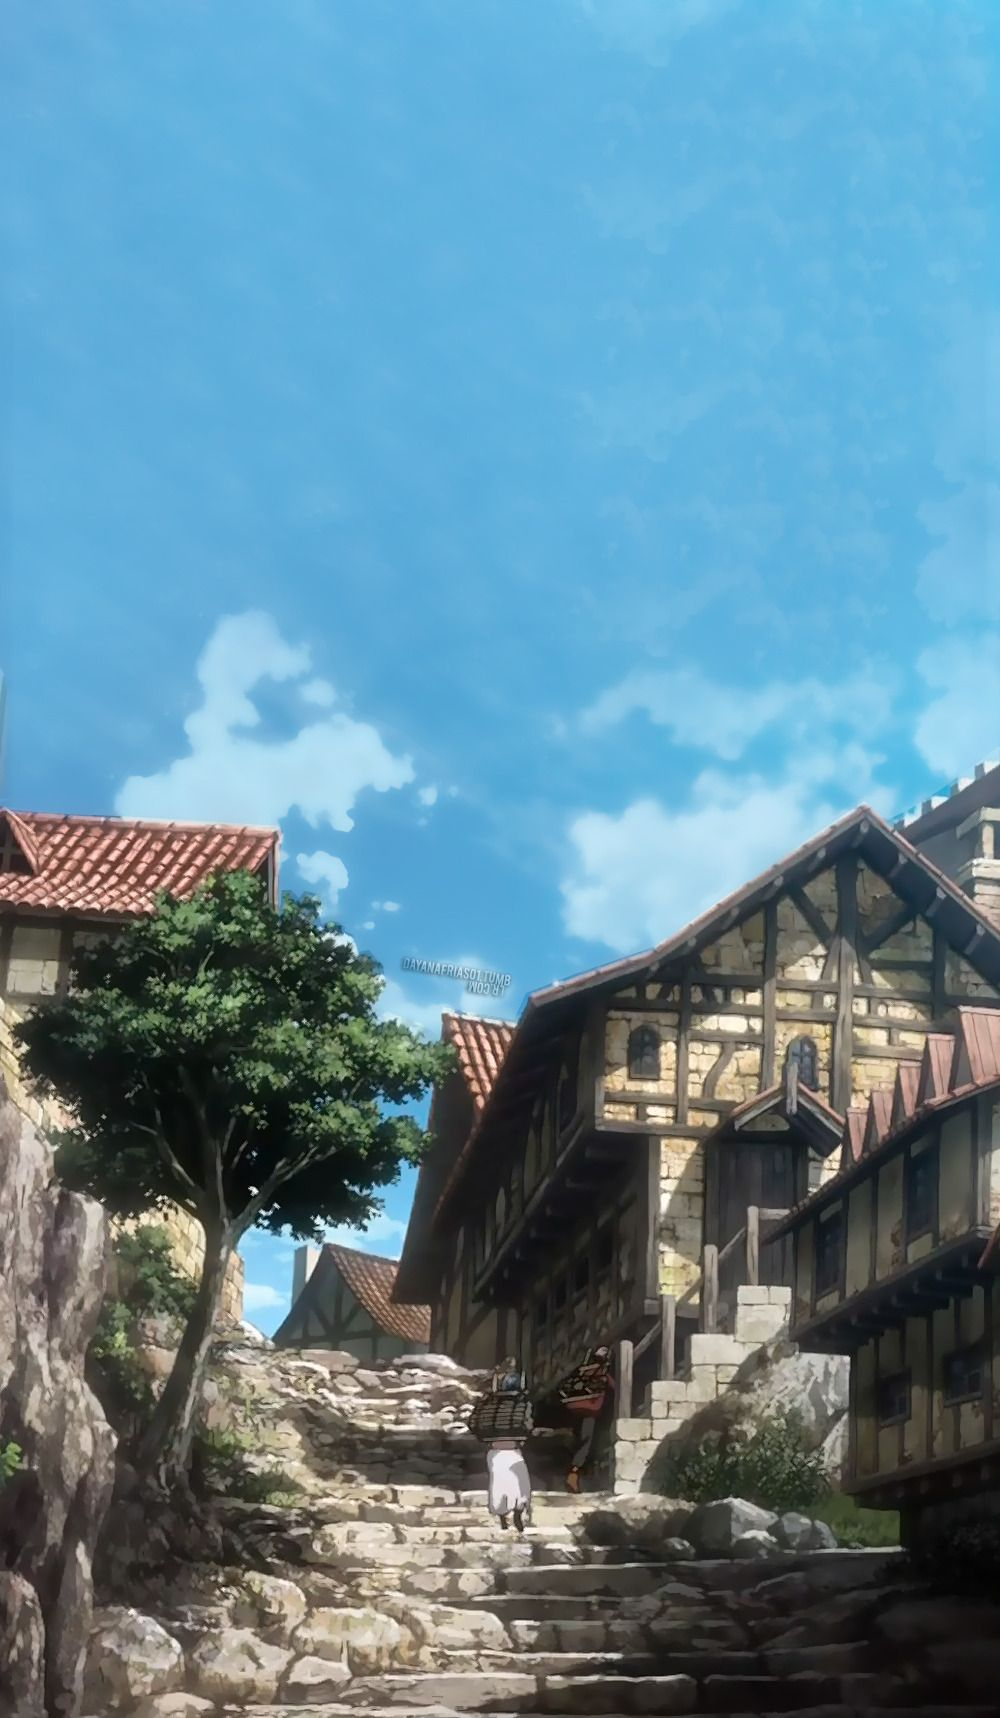 There's always talk about the quality animation in attack on titan. Attack on Titan   Scenery   Wallpaper   Aot scenery, Anime ...